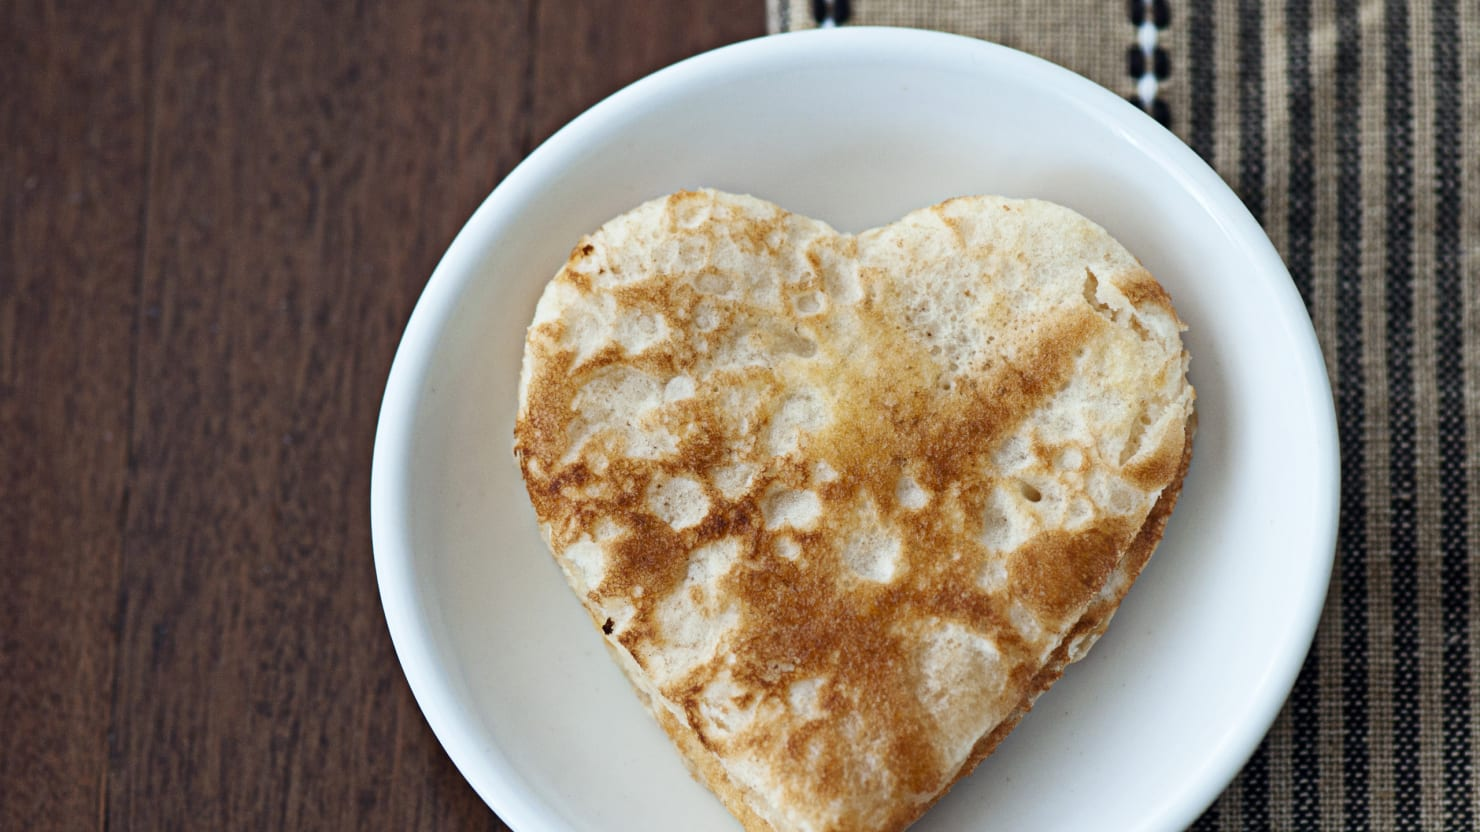 Cat coras valentines day menu for single people carolyn hebbardgetty forumfinder Images